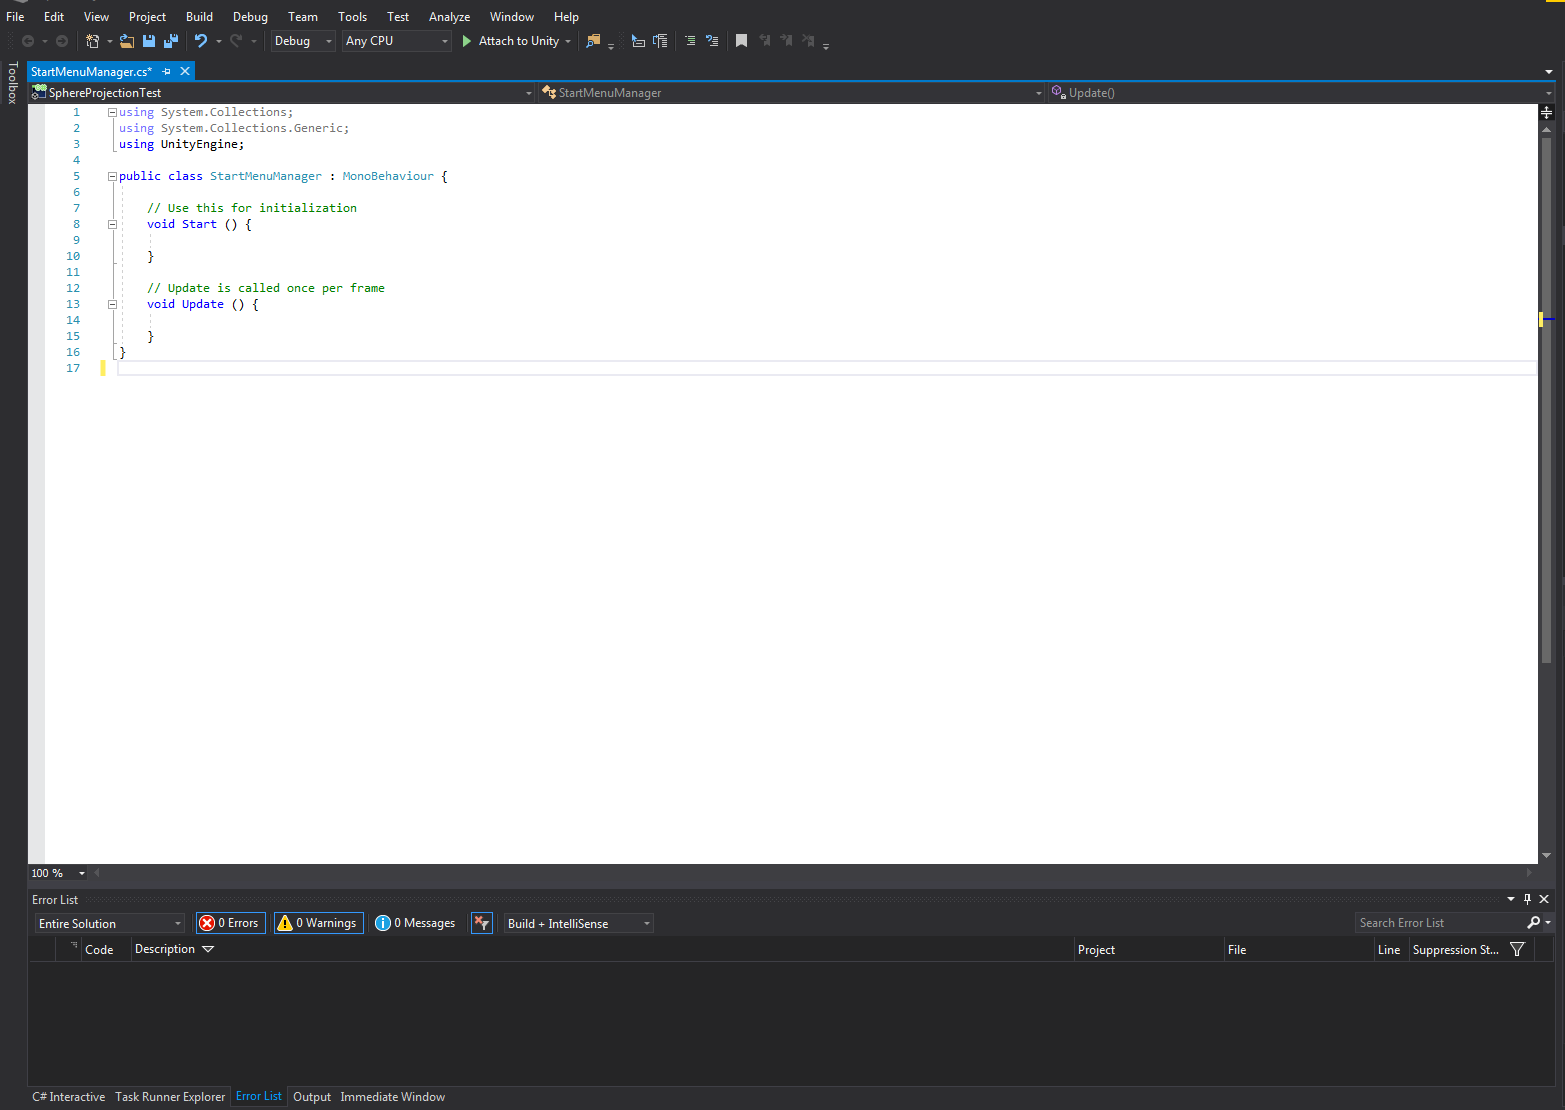 Visual Studio 2017 Dark Theme not working correctly - Unity Forum